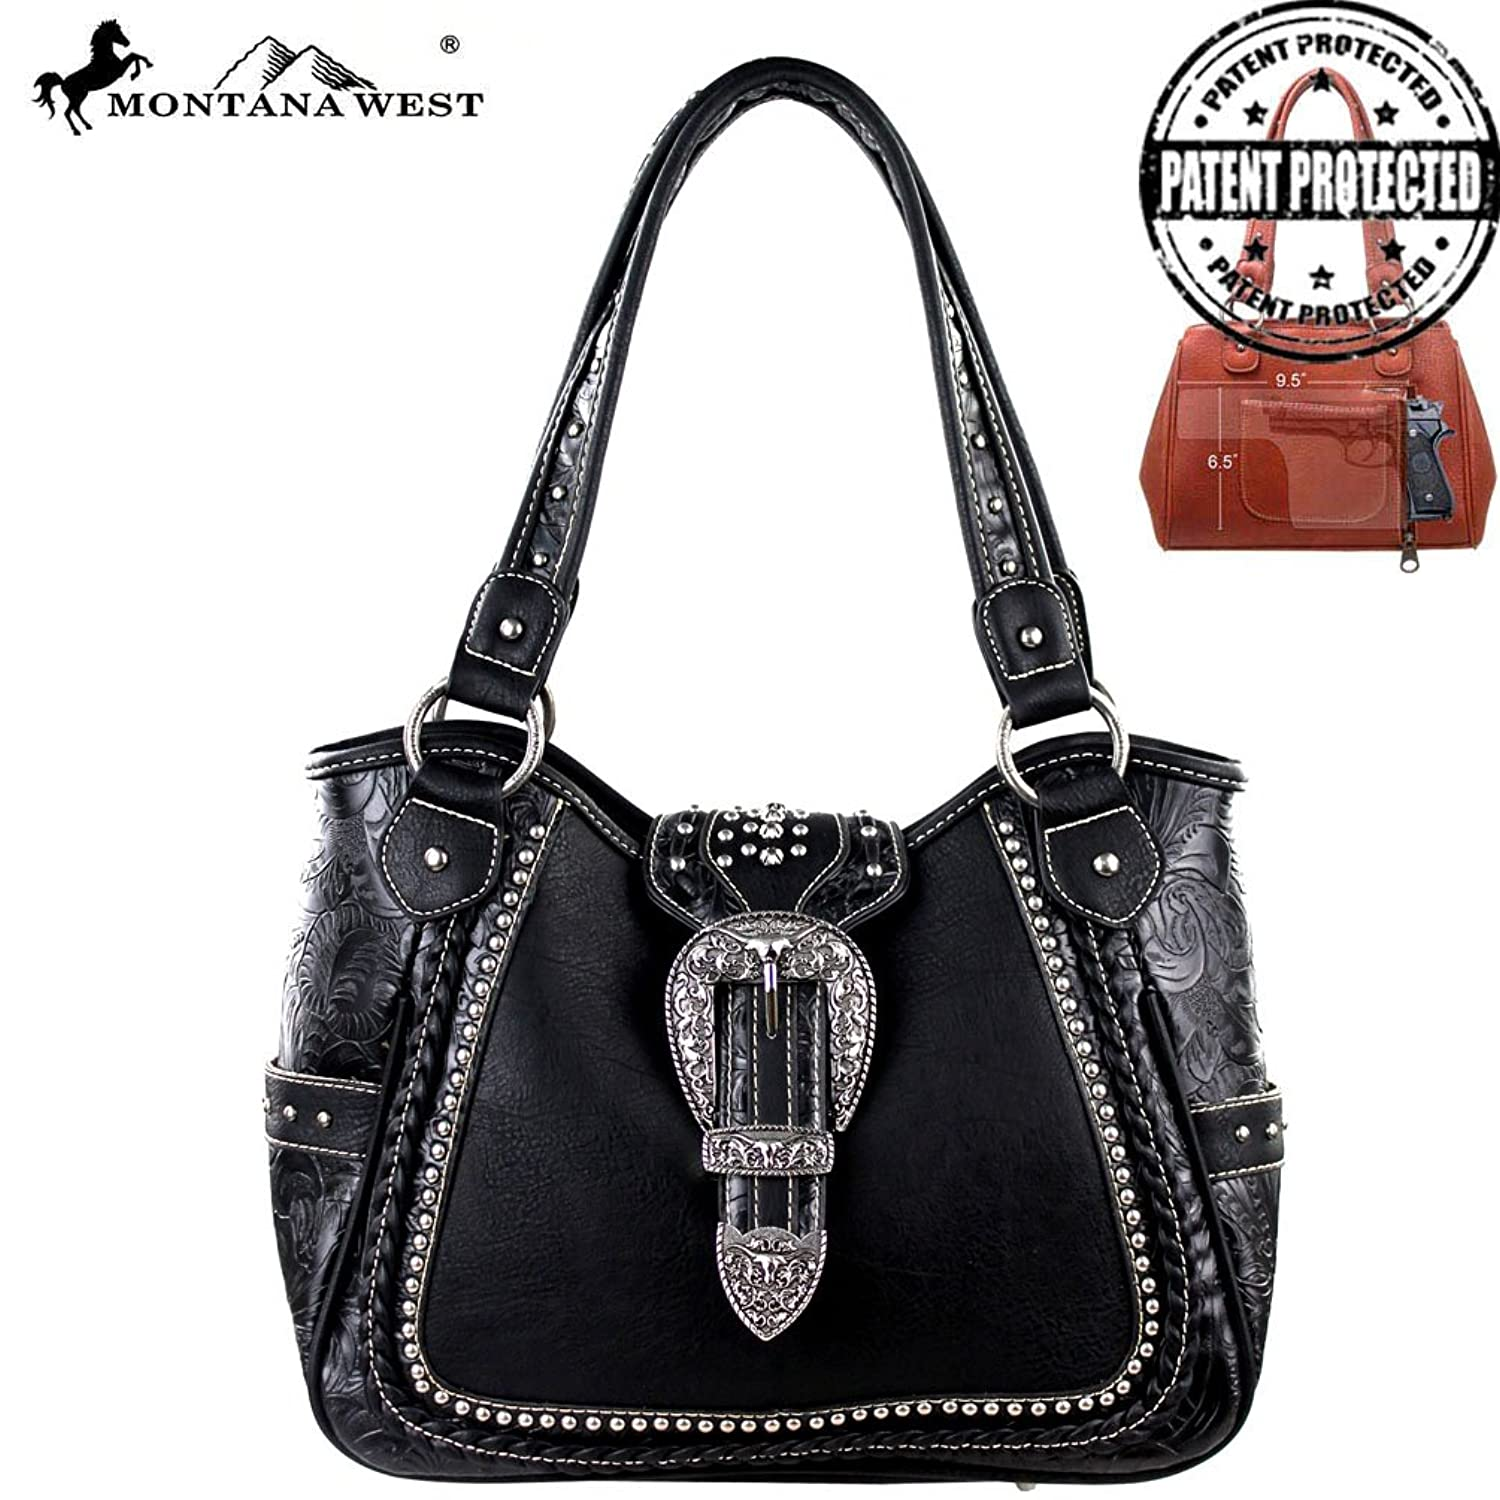 MW220G-8110 Montana West Concealed Handgun Collection Handbag